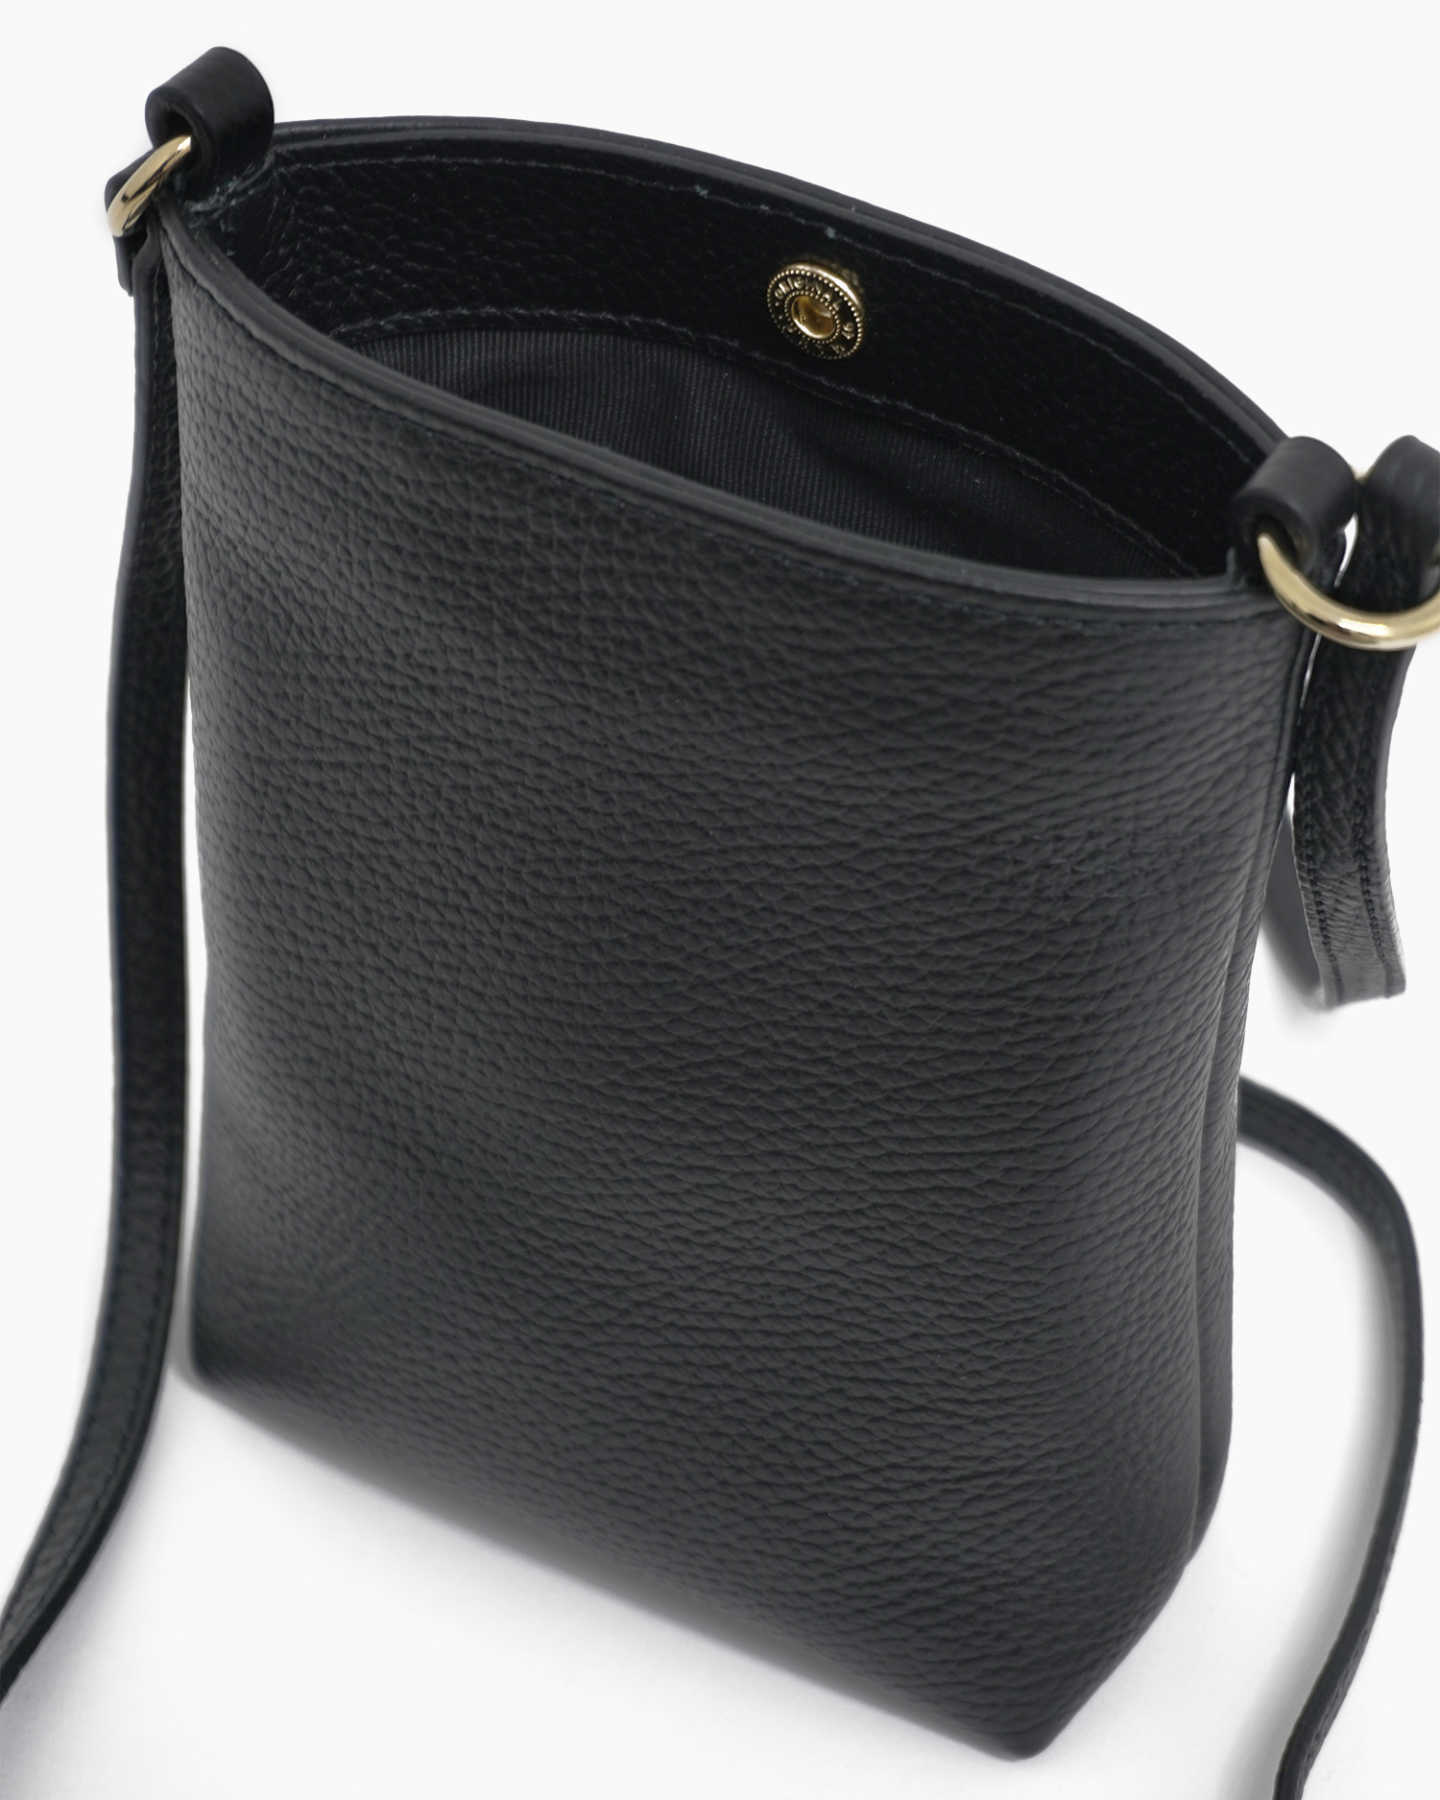 Italian Pebbled Leather Phone Crossbody - Black - 9 - Thumbnail